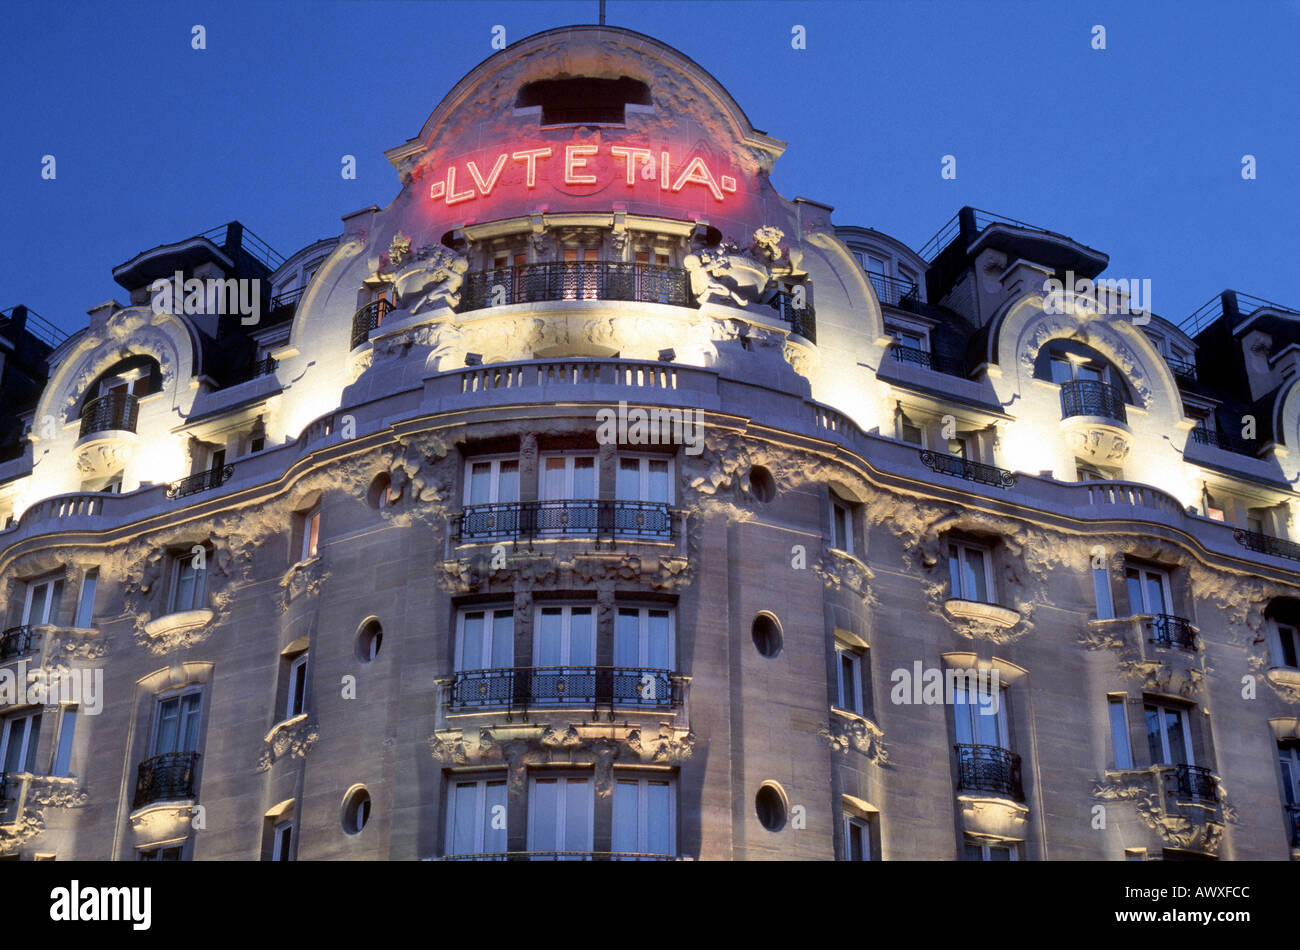 paris france french luxury hotel lutetia palace art nouveau